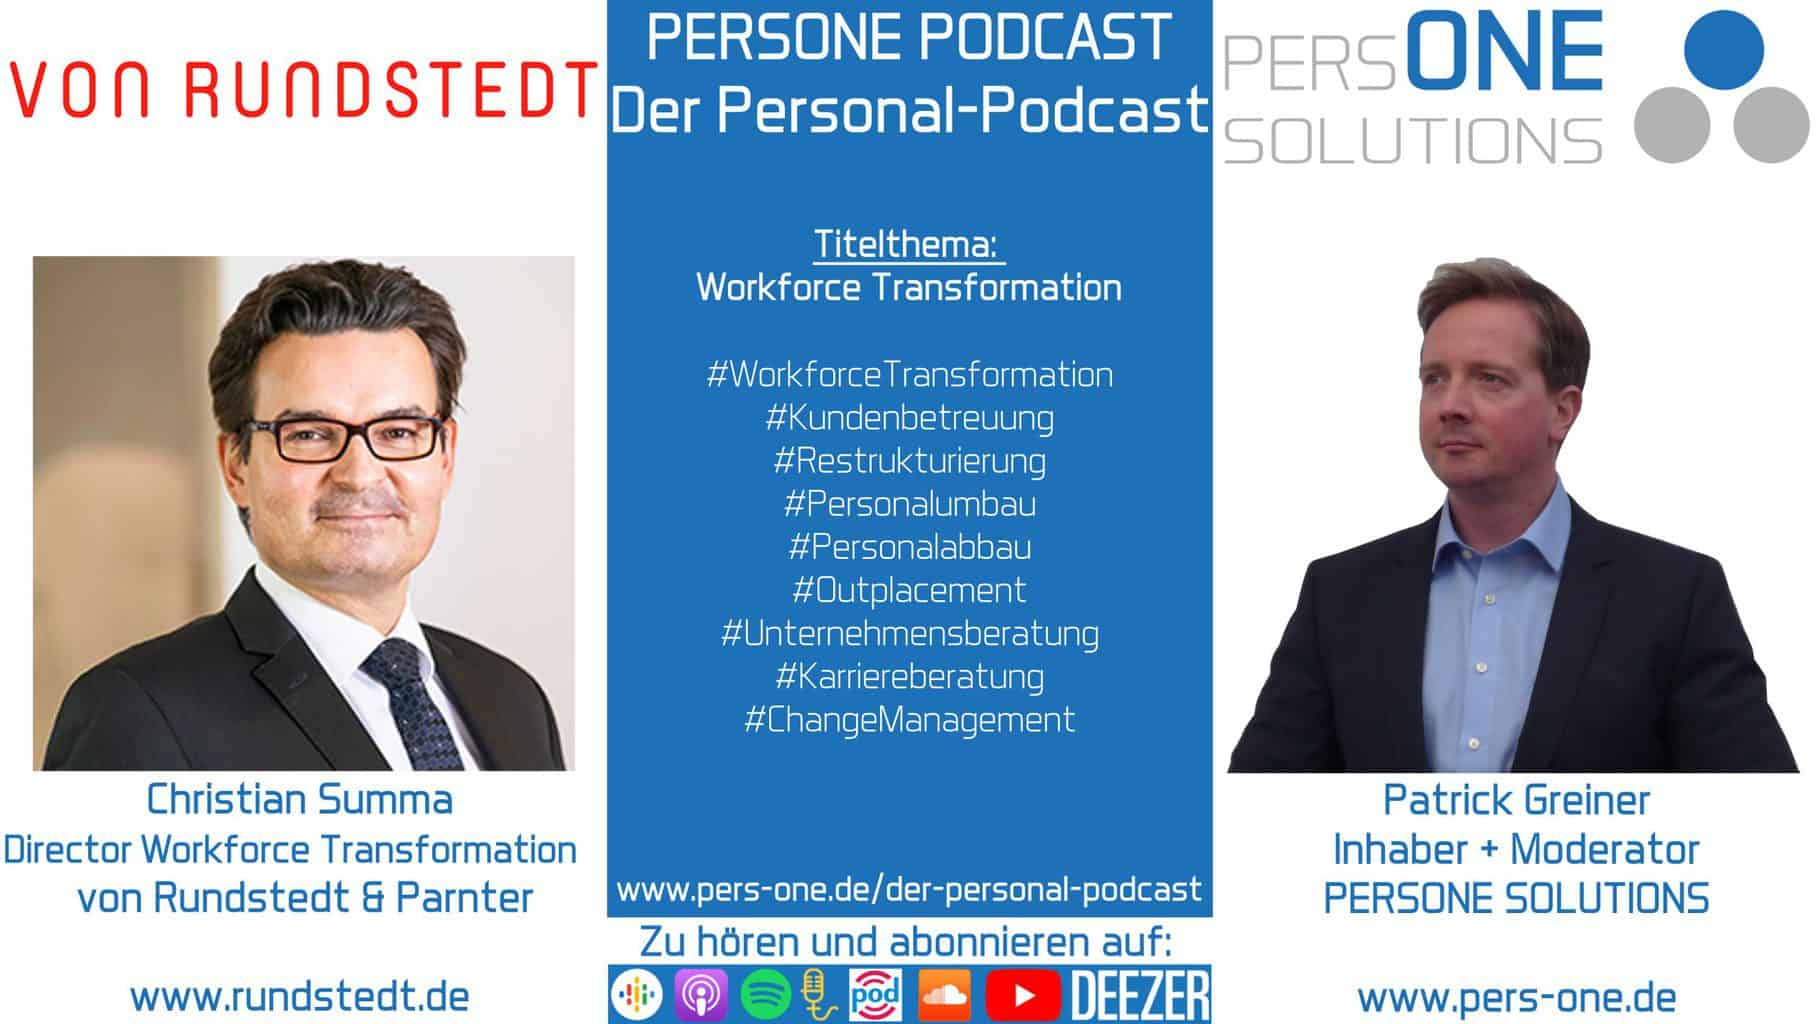 Summa, Christian_von Rundstedt_Interview-SM Layout_PERSONE PODCAST